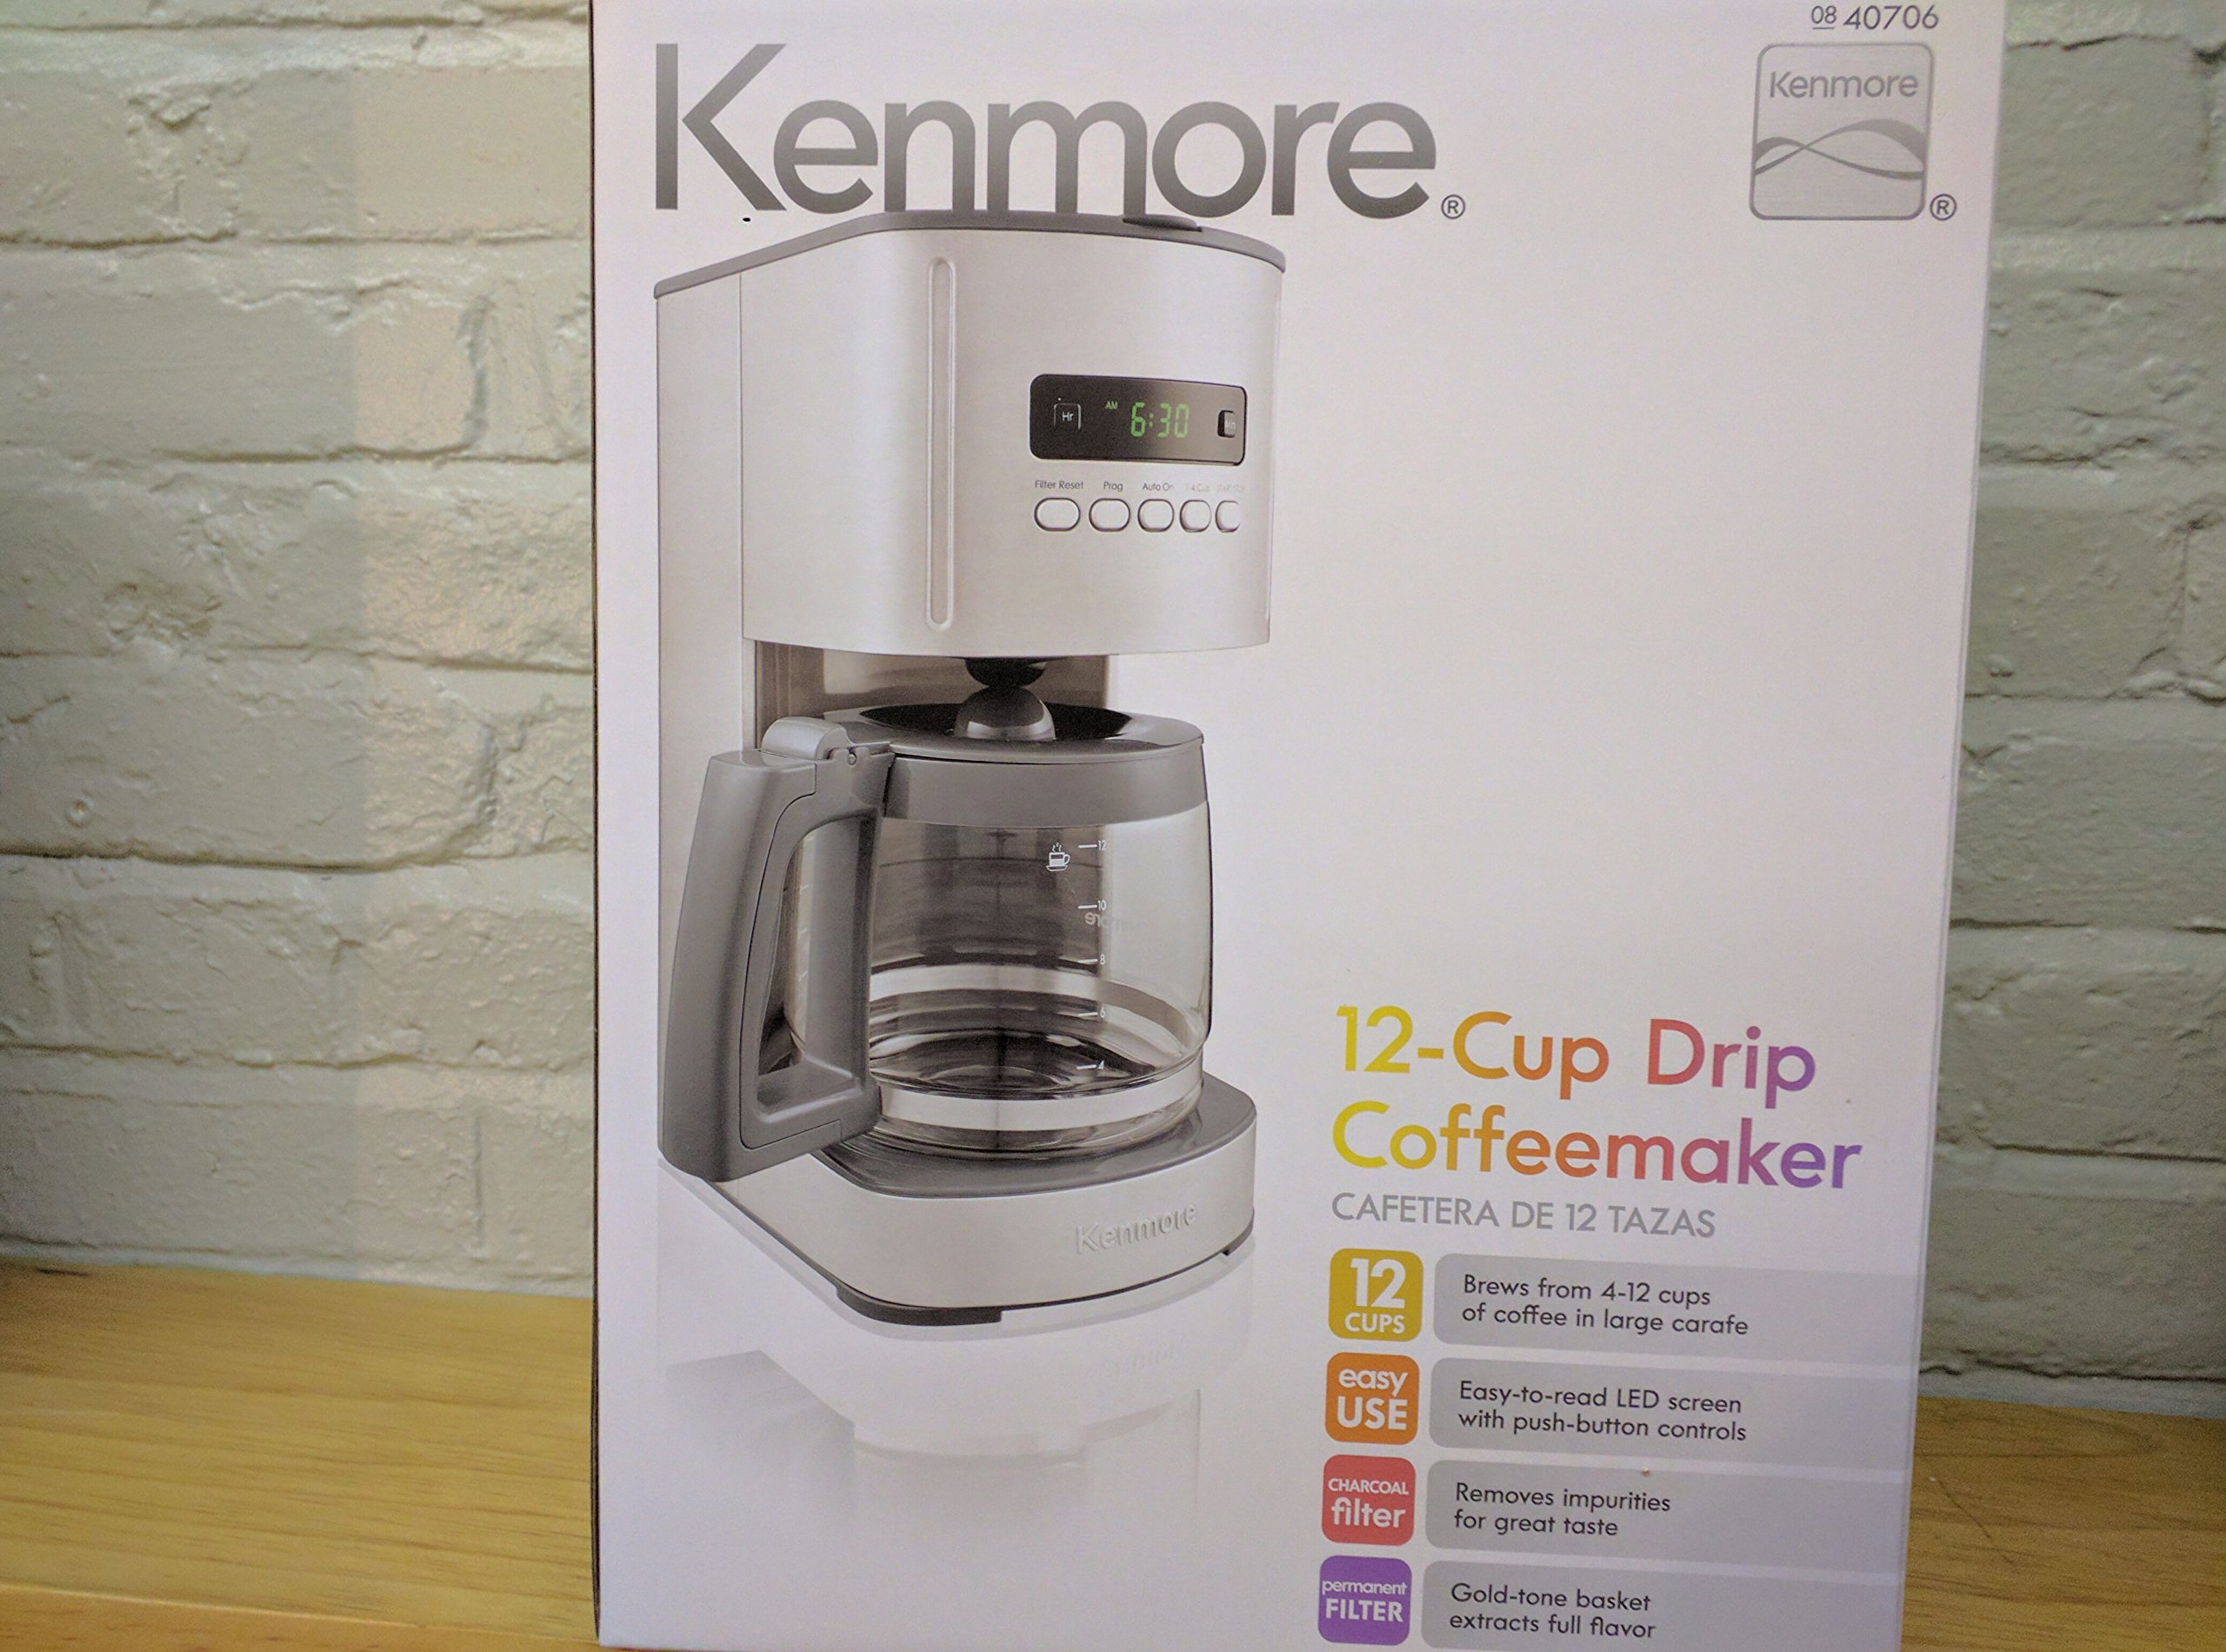 Compatible with Kenmore 100.40706310 Coffee Maker Carafe